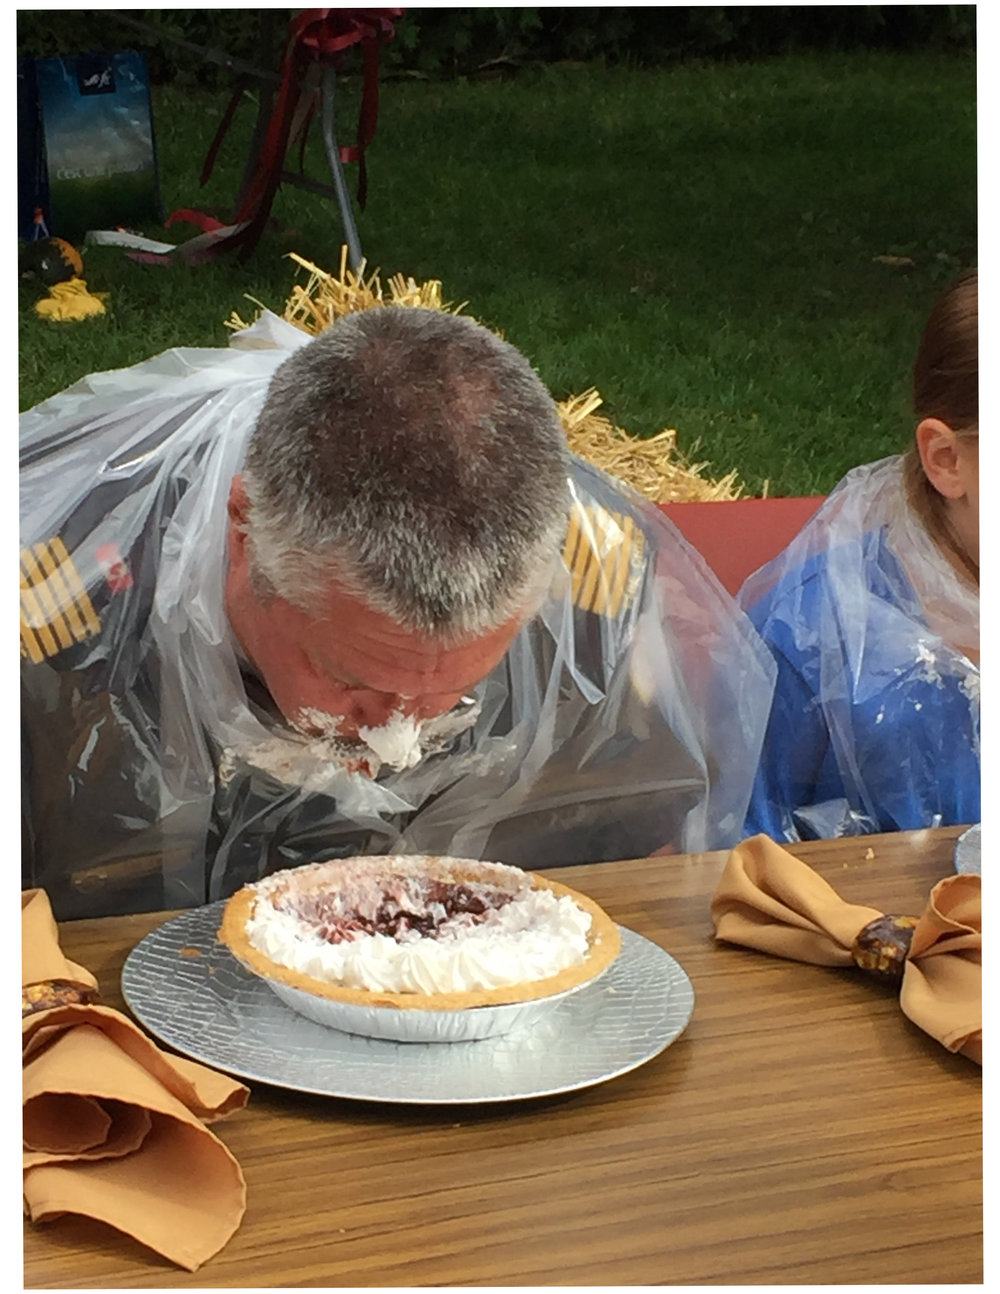 pie eating contest dave.jpg